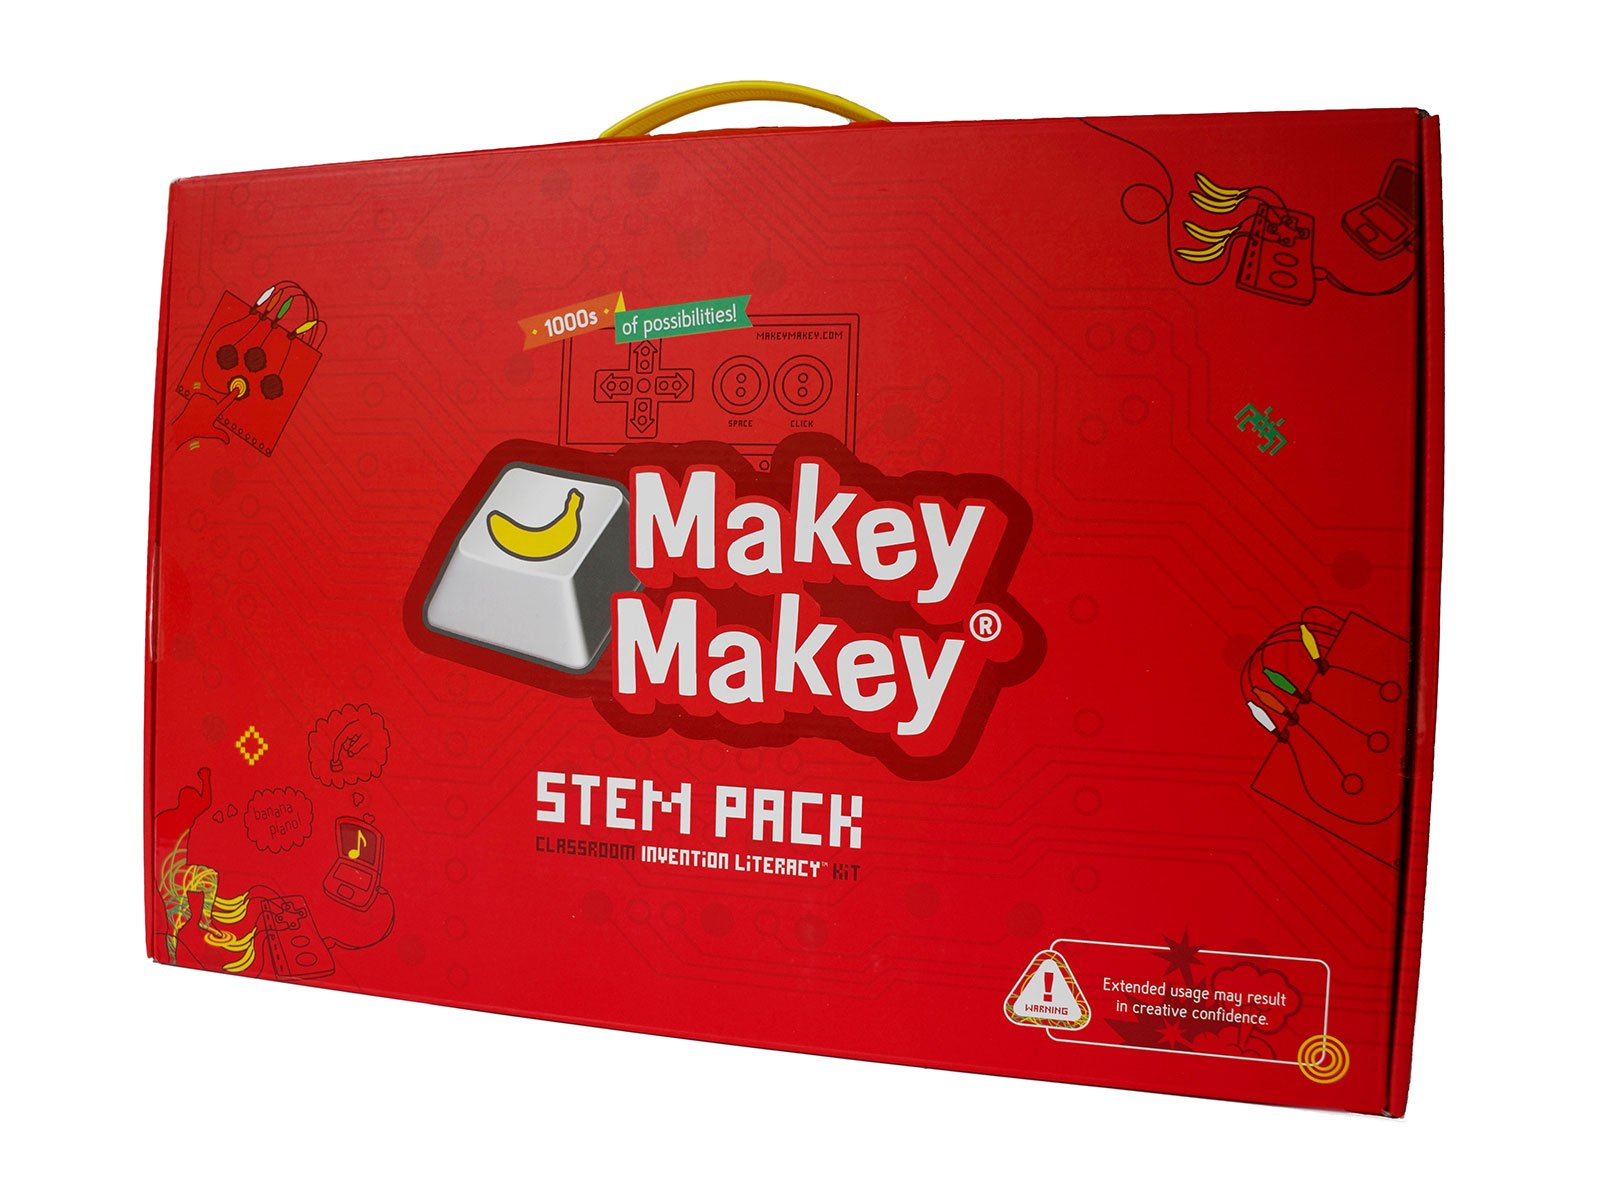 Makey Makey Stem Pack - Classroom Invention Literacy Kit, Red by Makey Makey (Image #2)